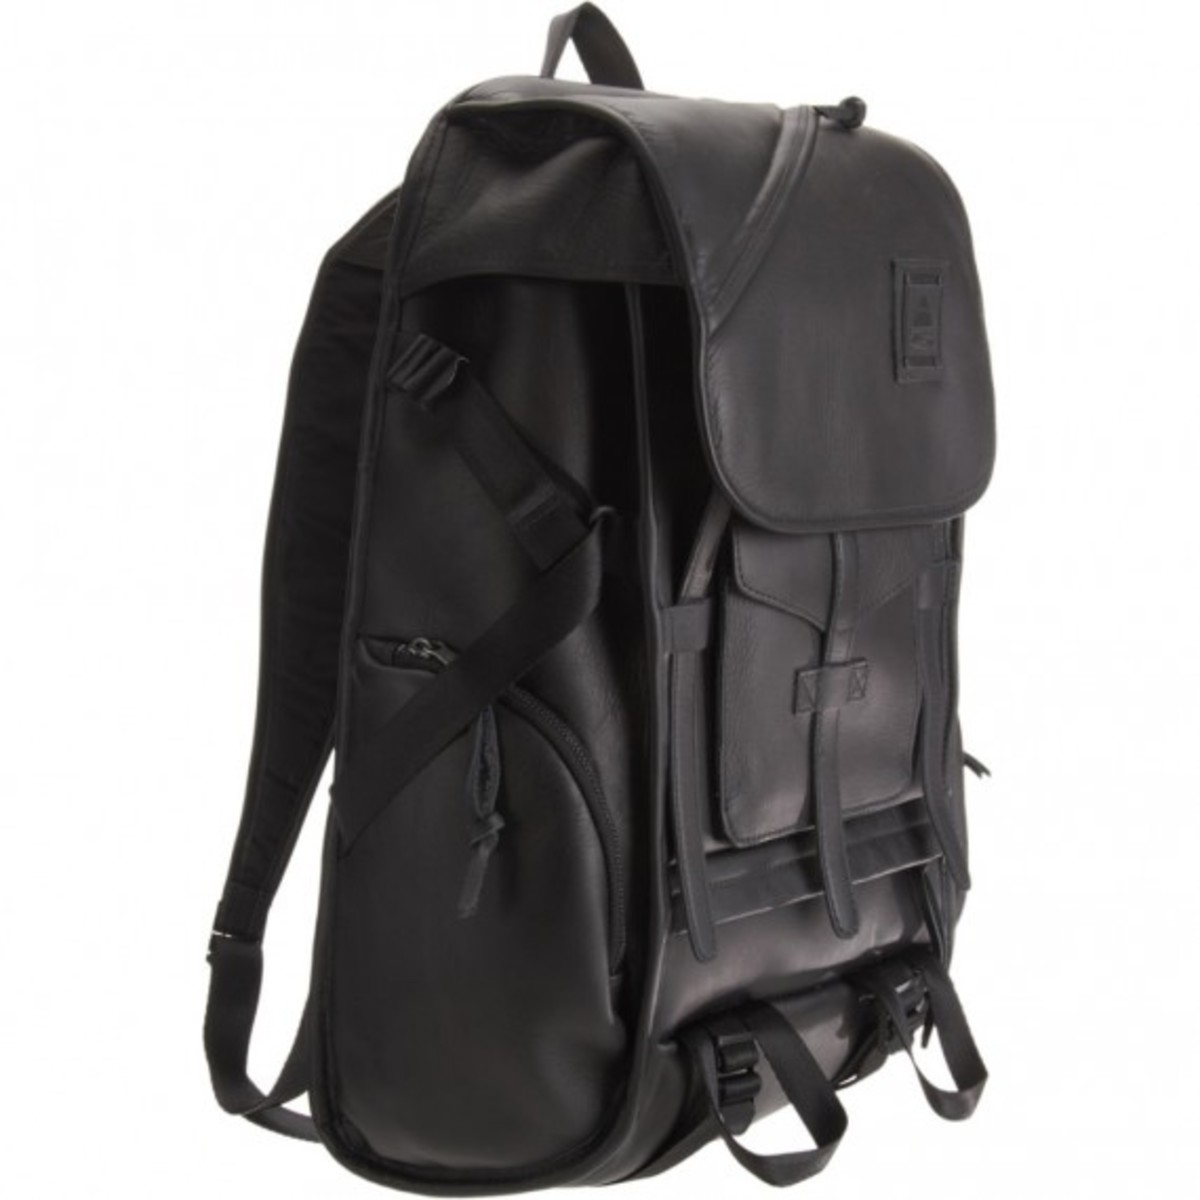 barneys-jansport-heritage-carbon-collection-thompkins-02